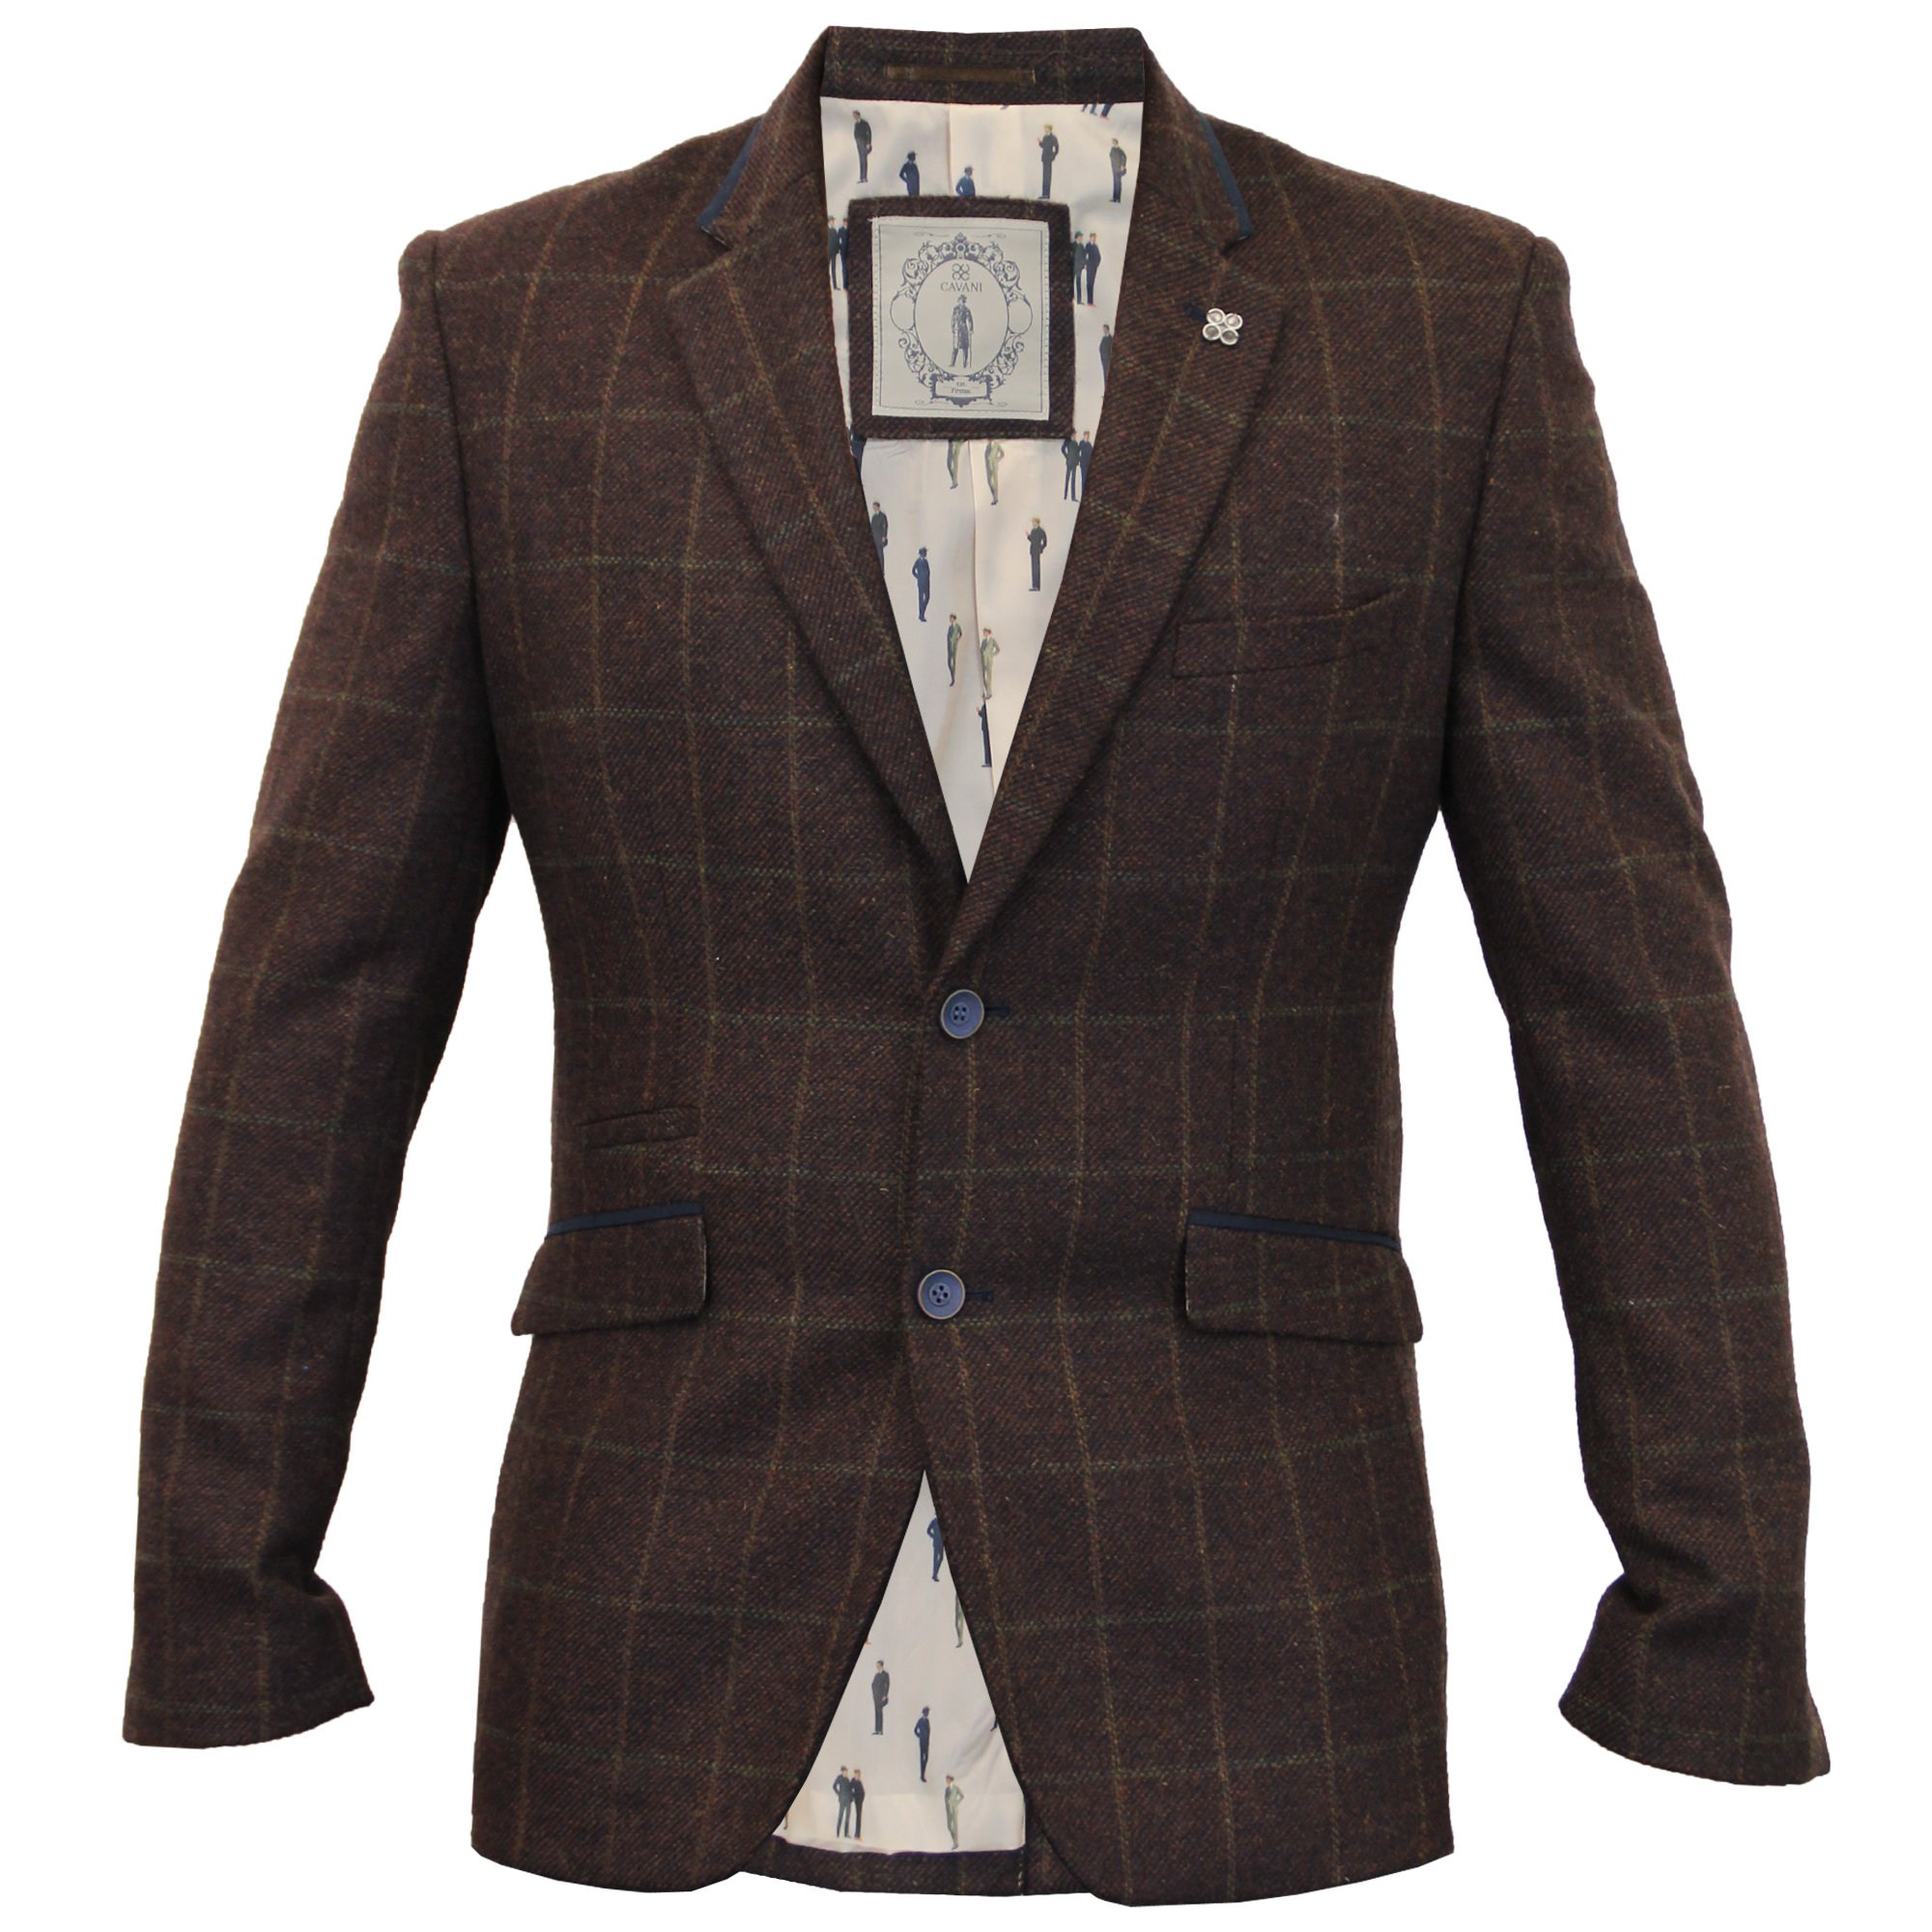 Mens Blazer Cavani Coat Dinner Suit Jacket Herringbone